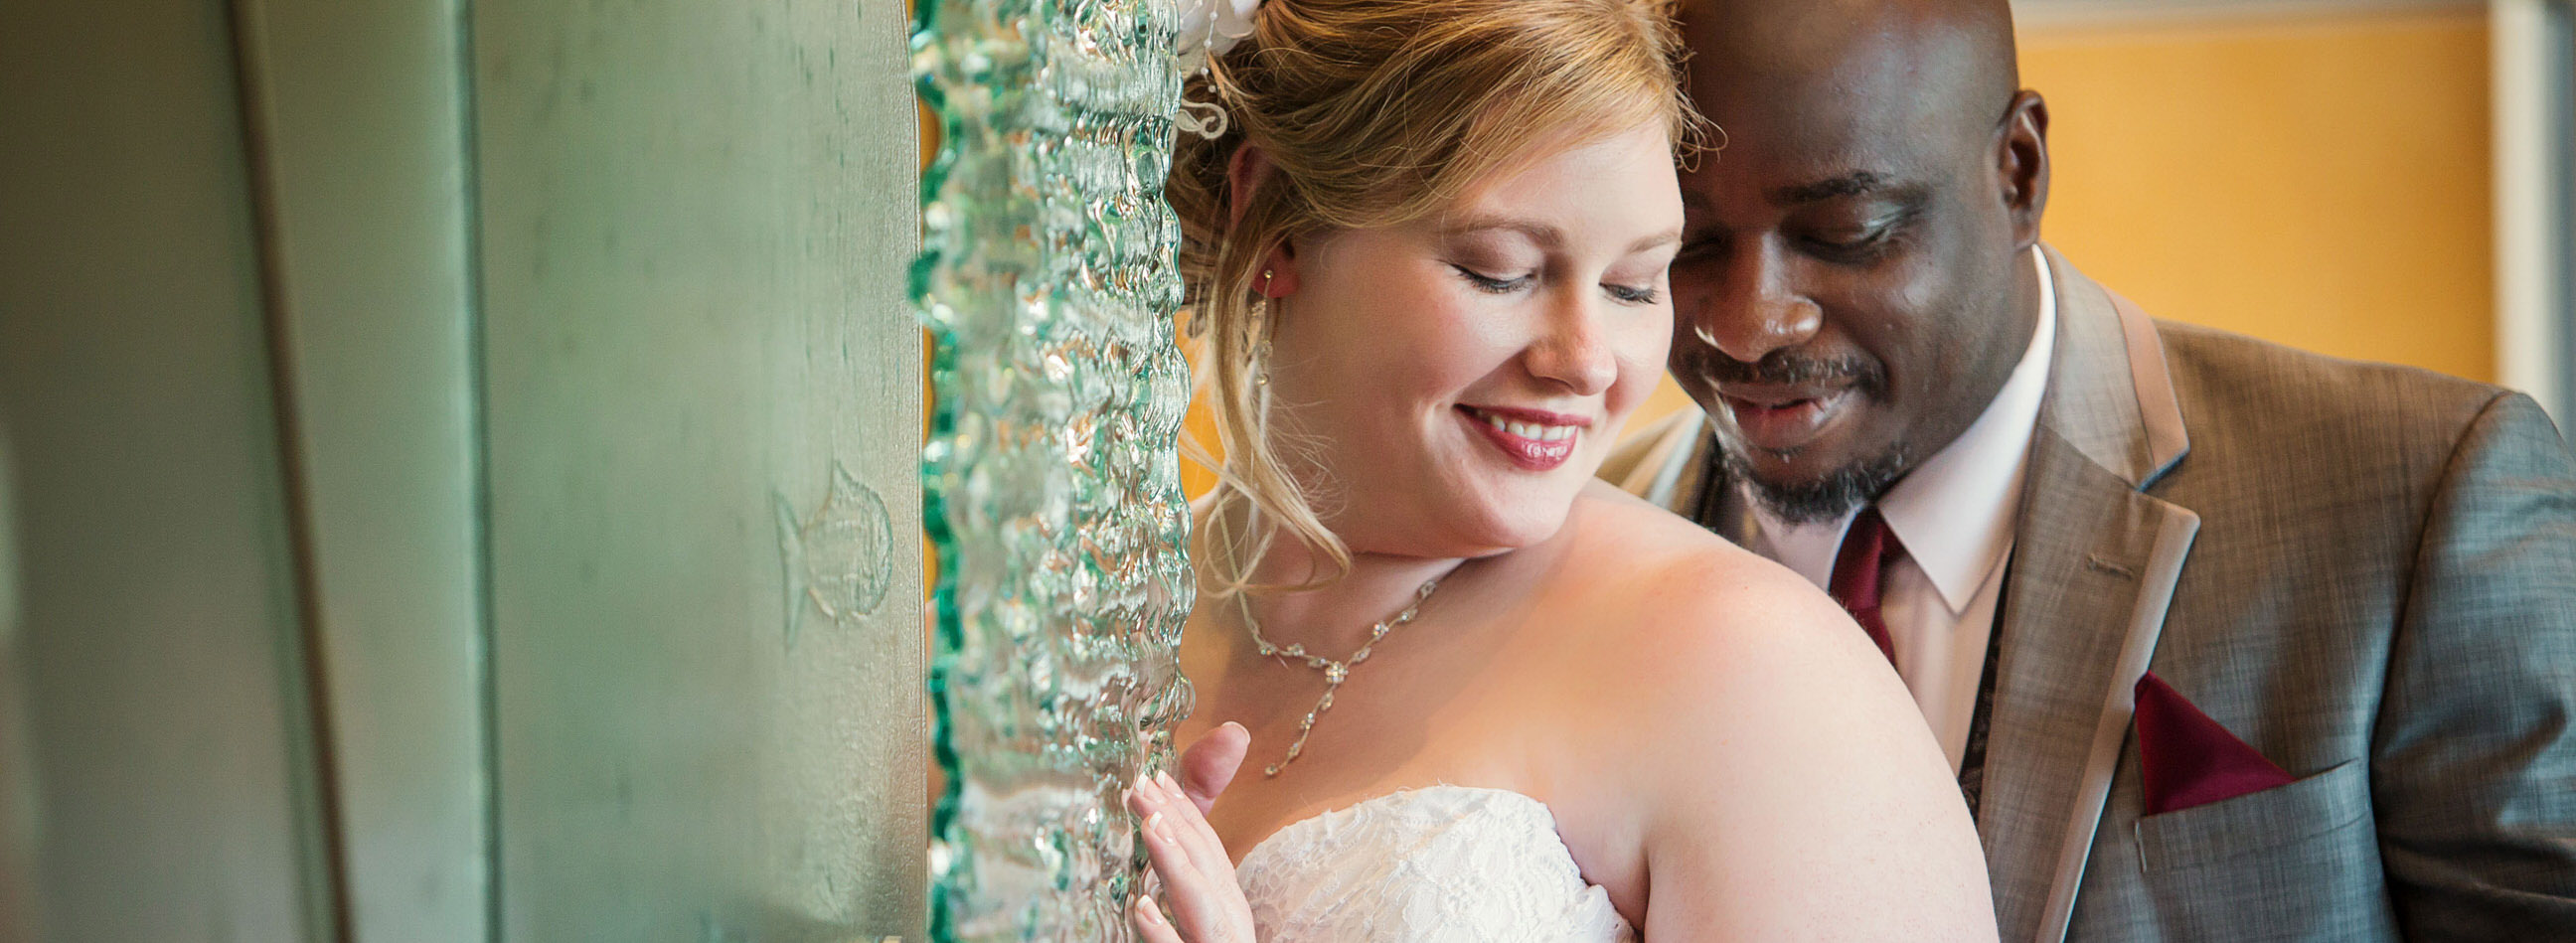 Cyndy & Austin wedding testimonial